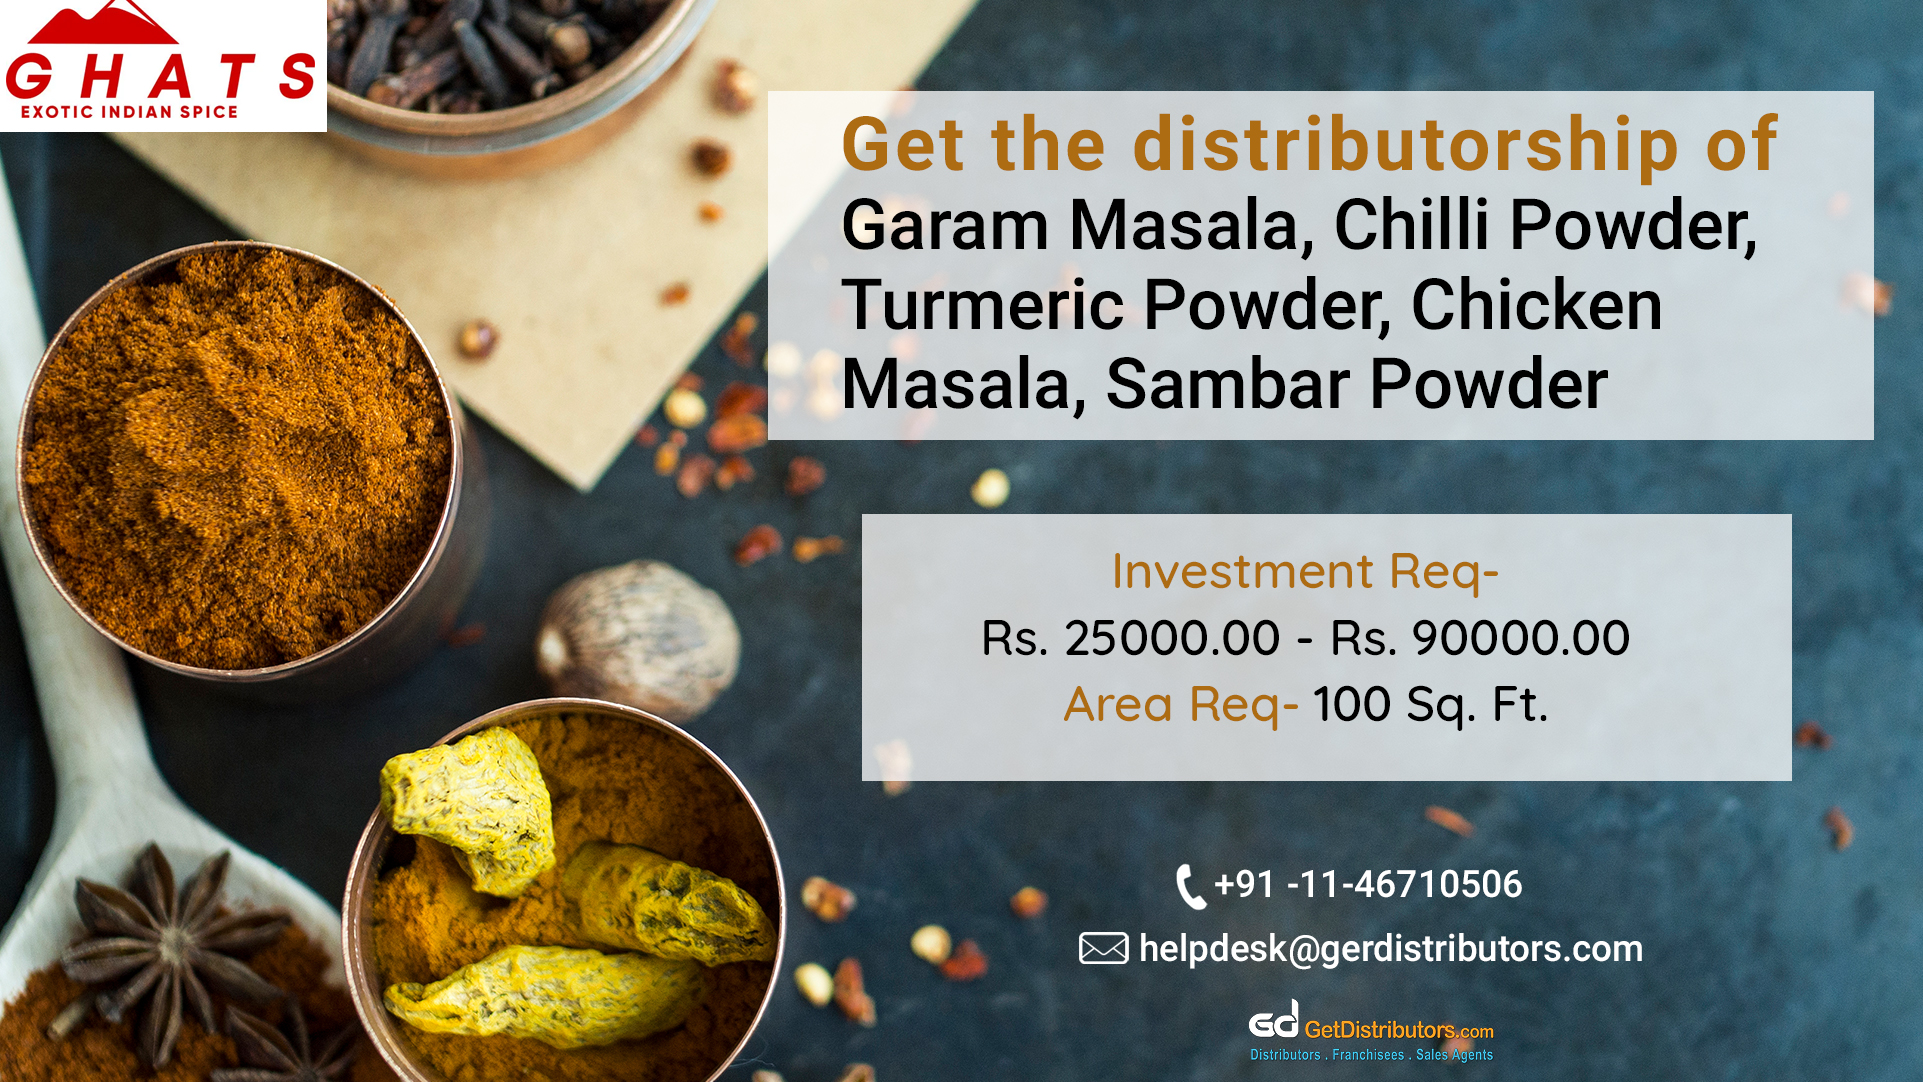 Optimum quality spices for distribution